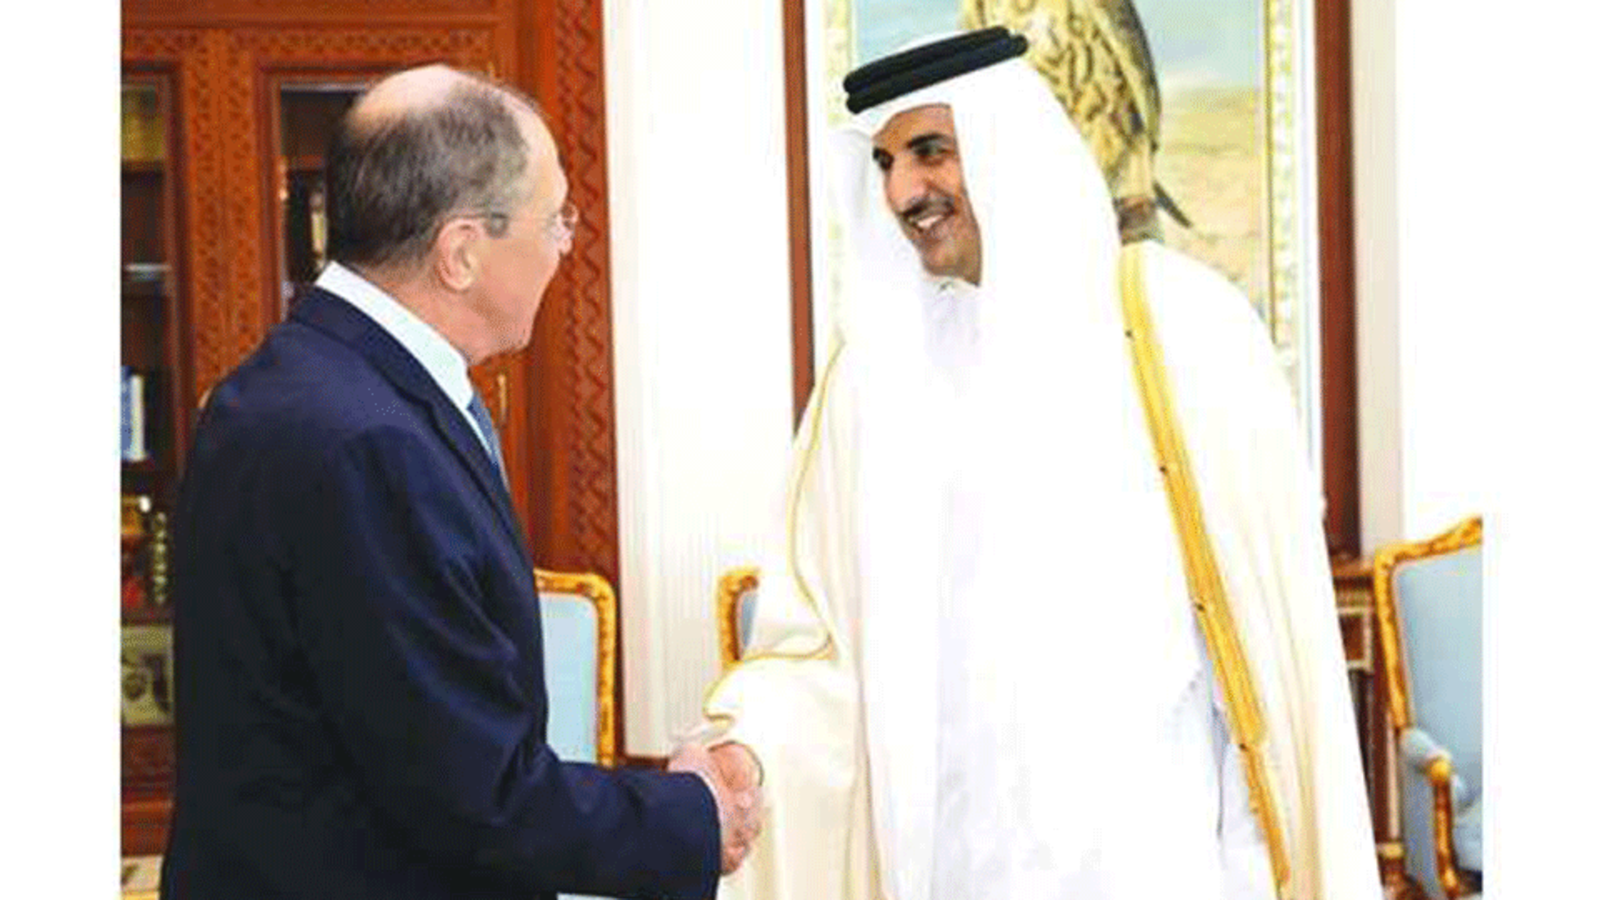 His Highness the Amir Sheikh Tamim bin Hamad al-Thani at his Amiri Diwan Office shakes hand with Russian Foreign Minister Sergey Lavrov. (Gulf Times)